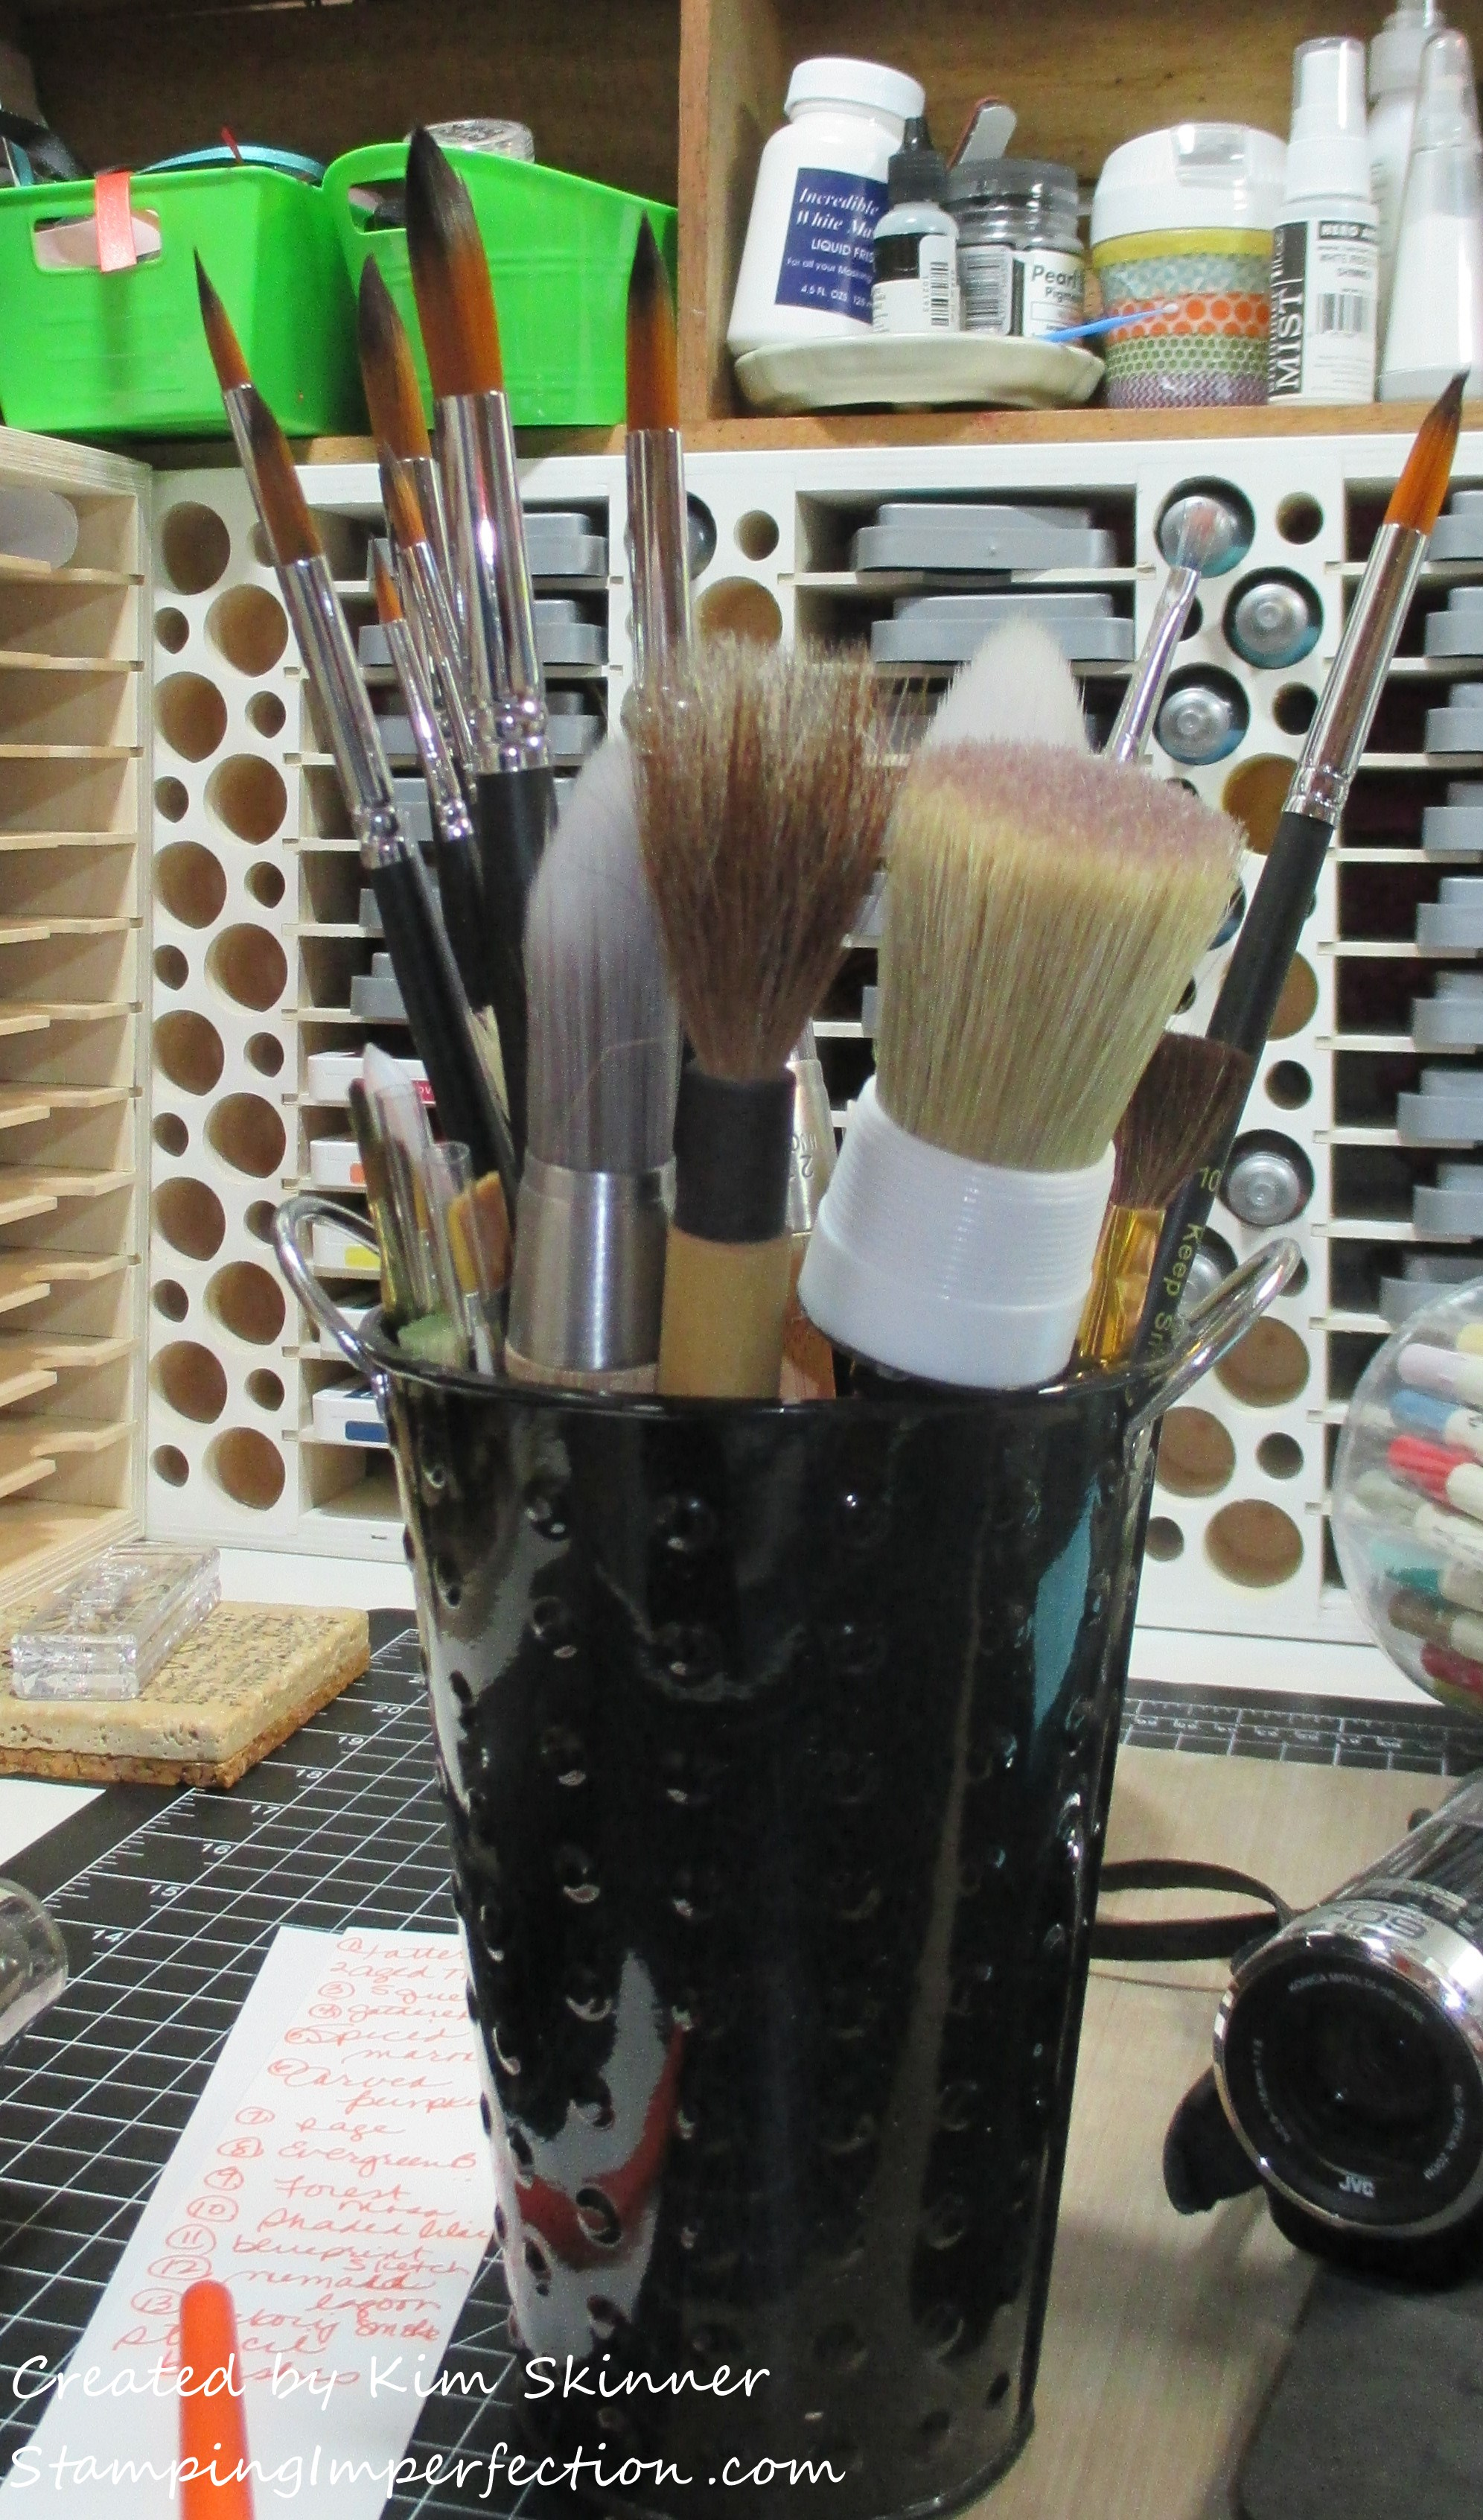 Stamping Imperfection Craft Room Organization